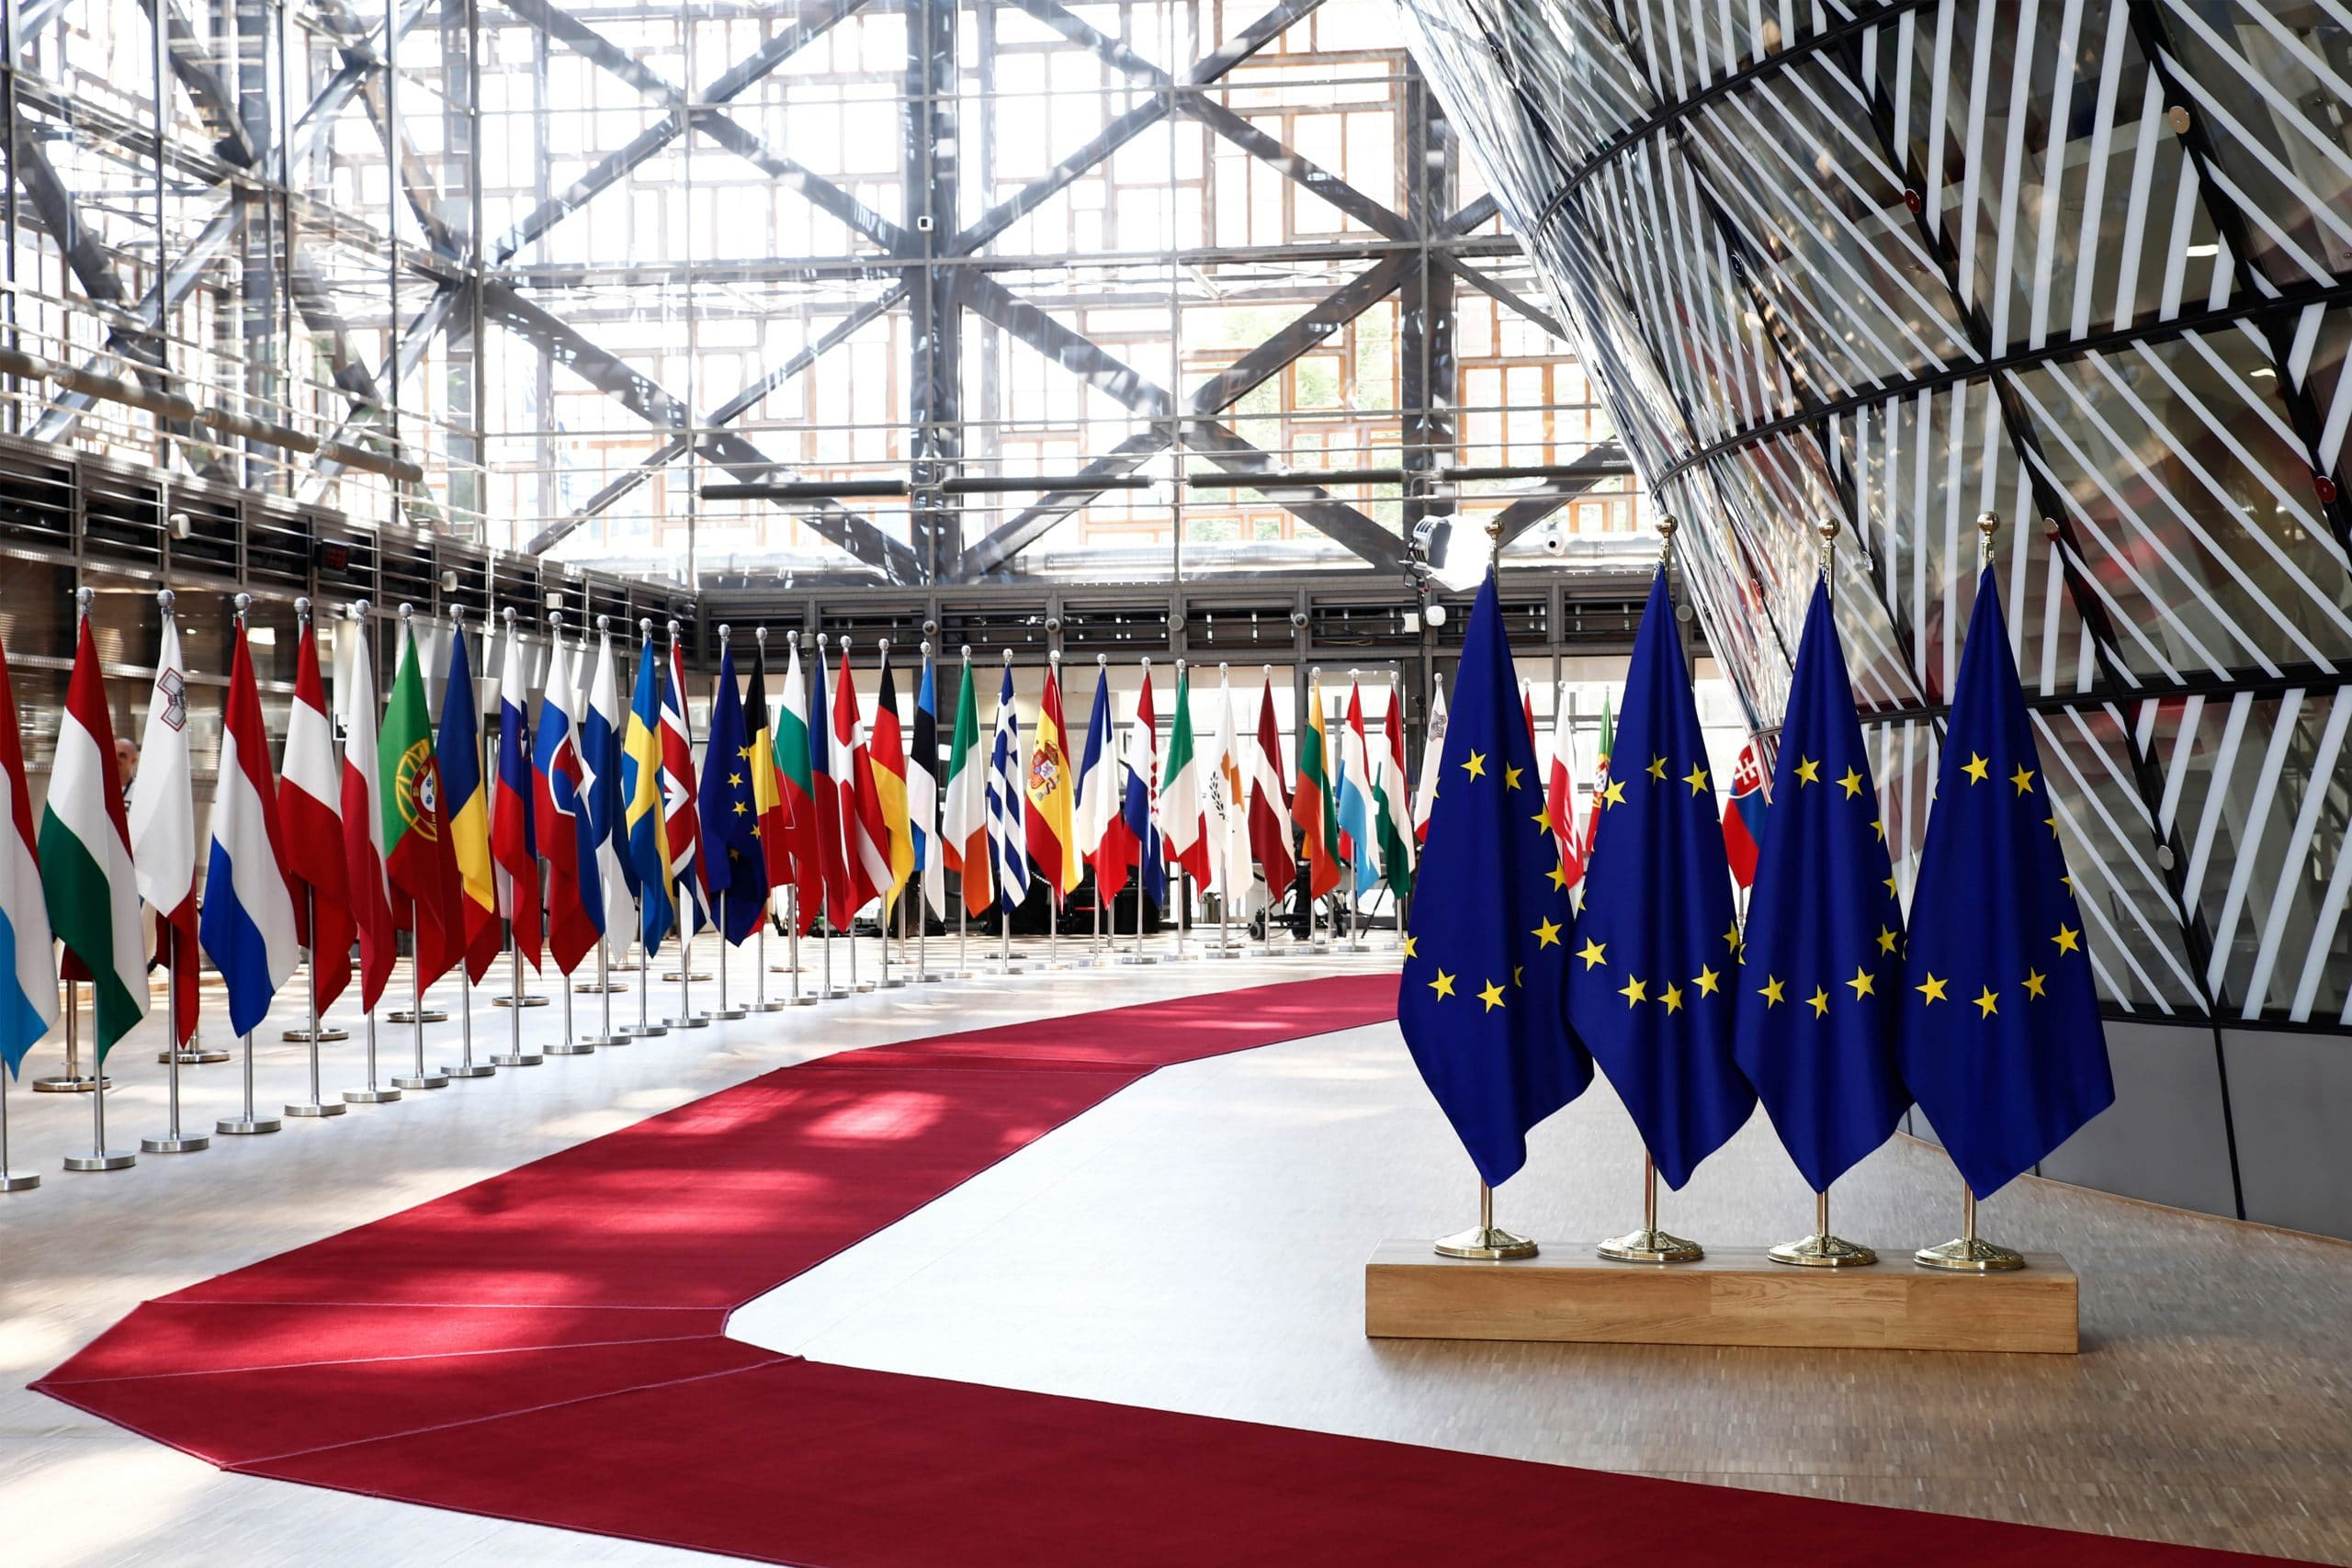 Gymnich Meeting as a Litmus Test of the EU's Ability to Act Together